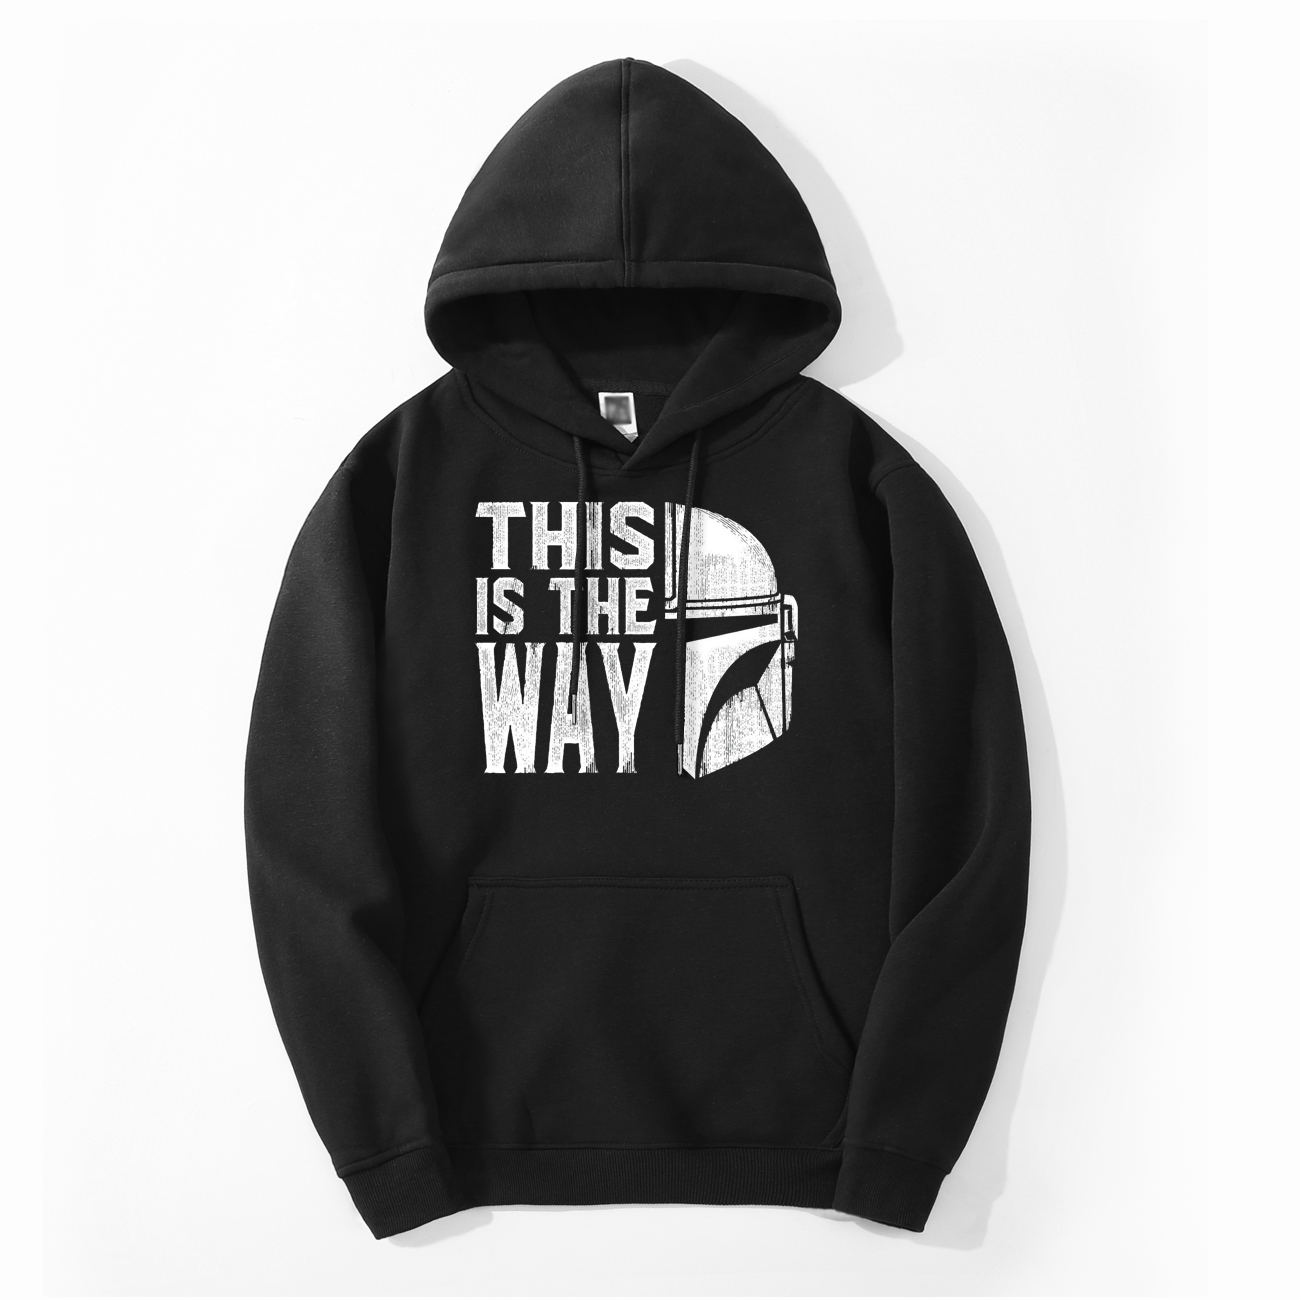 TV Show The Mandalorian Way Men Hoodies Sweatshirt Fleece Autumn Winter Star Wars This Is My Way Streetwear Warm Funny Hoodie